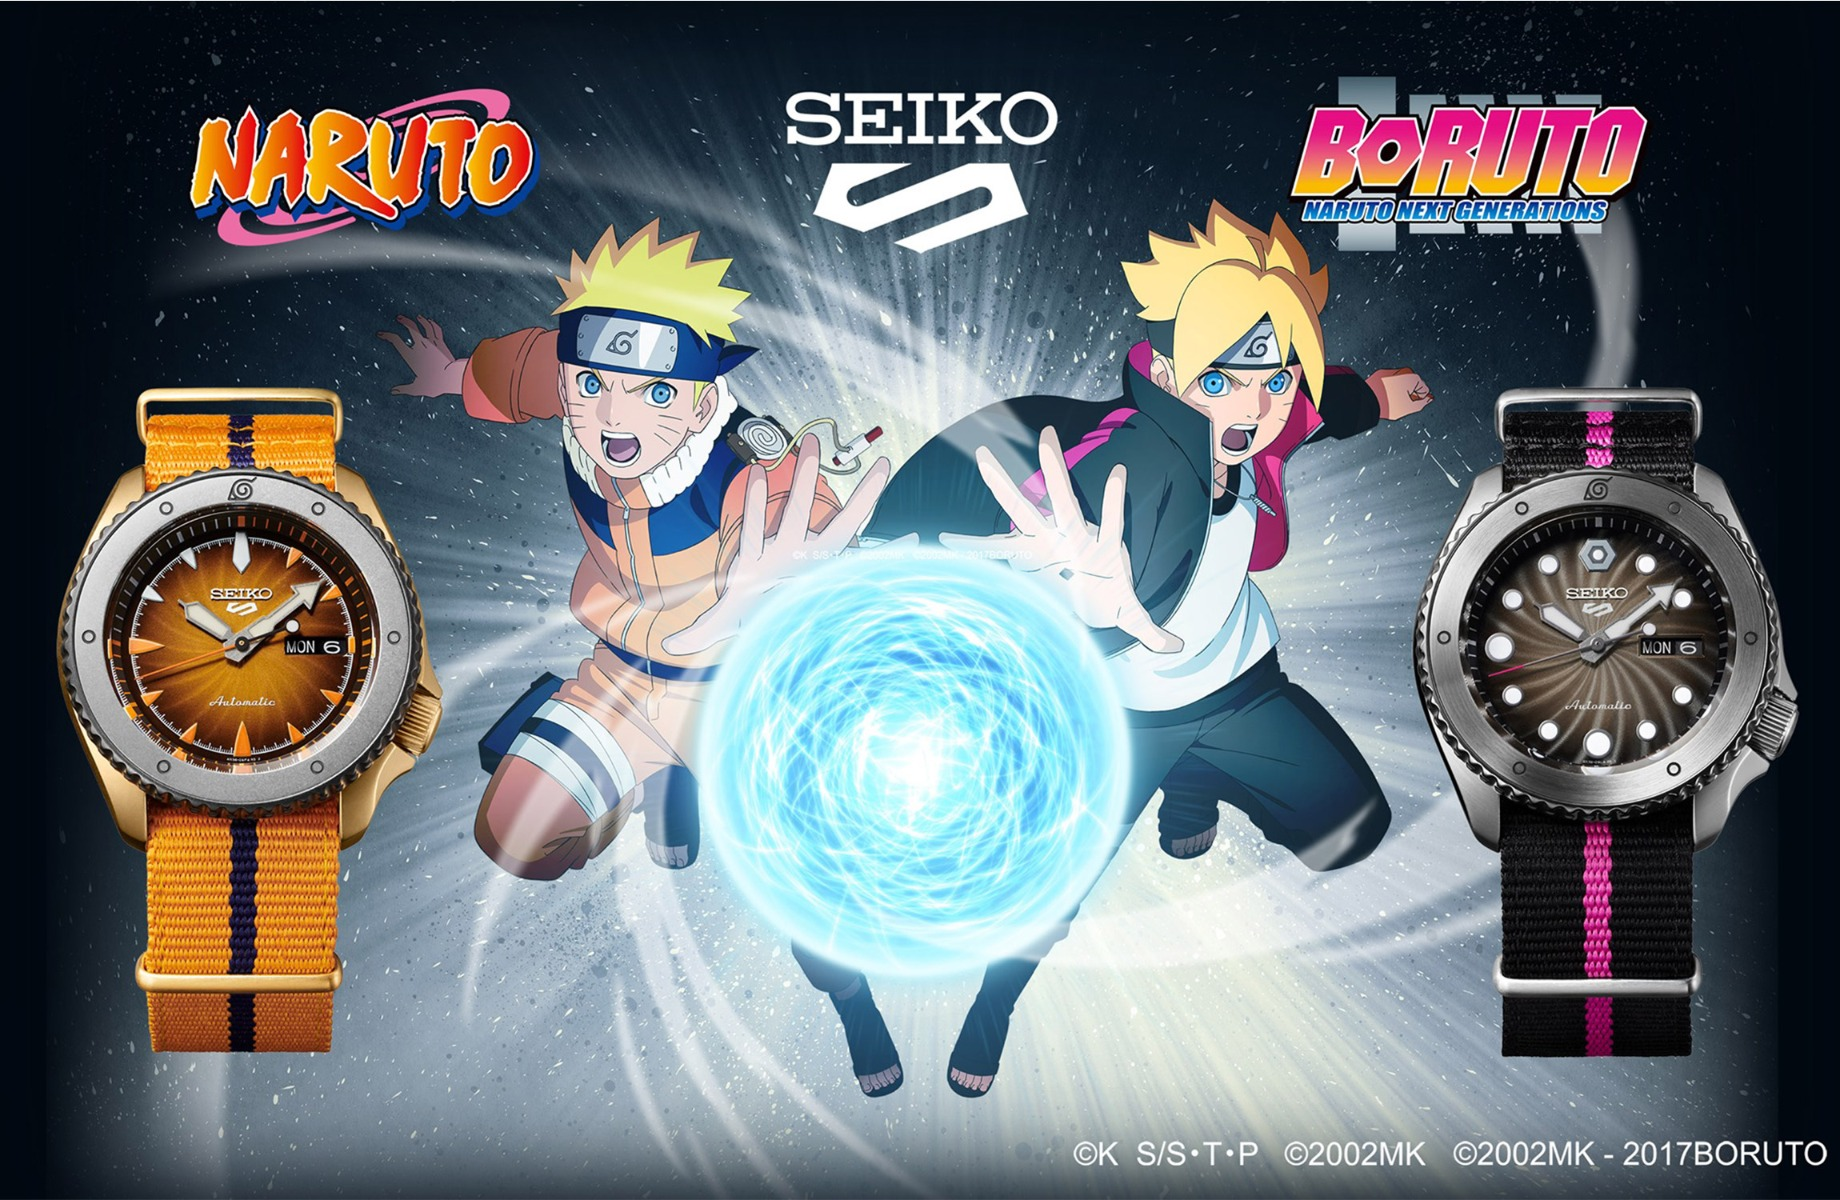 Seiko Naruto and Boruto Collaboration